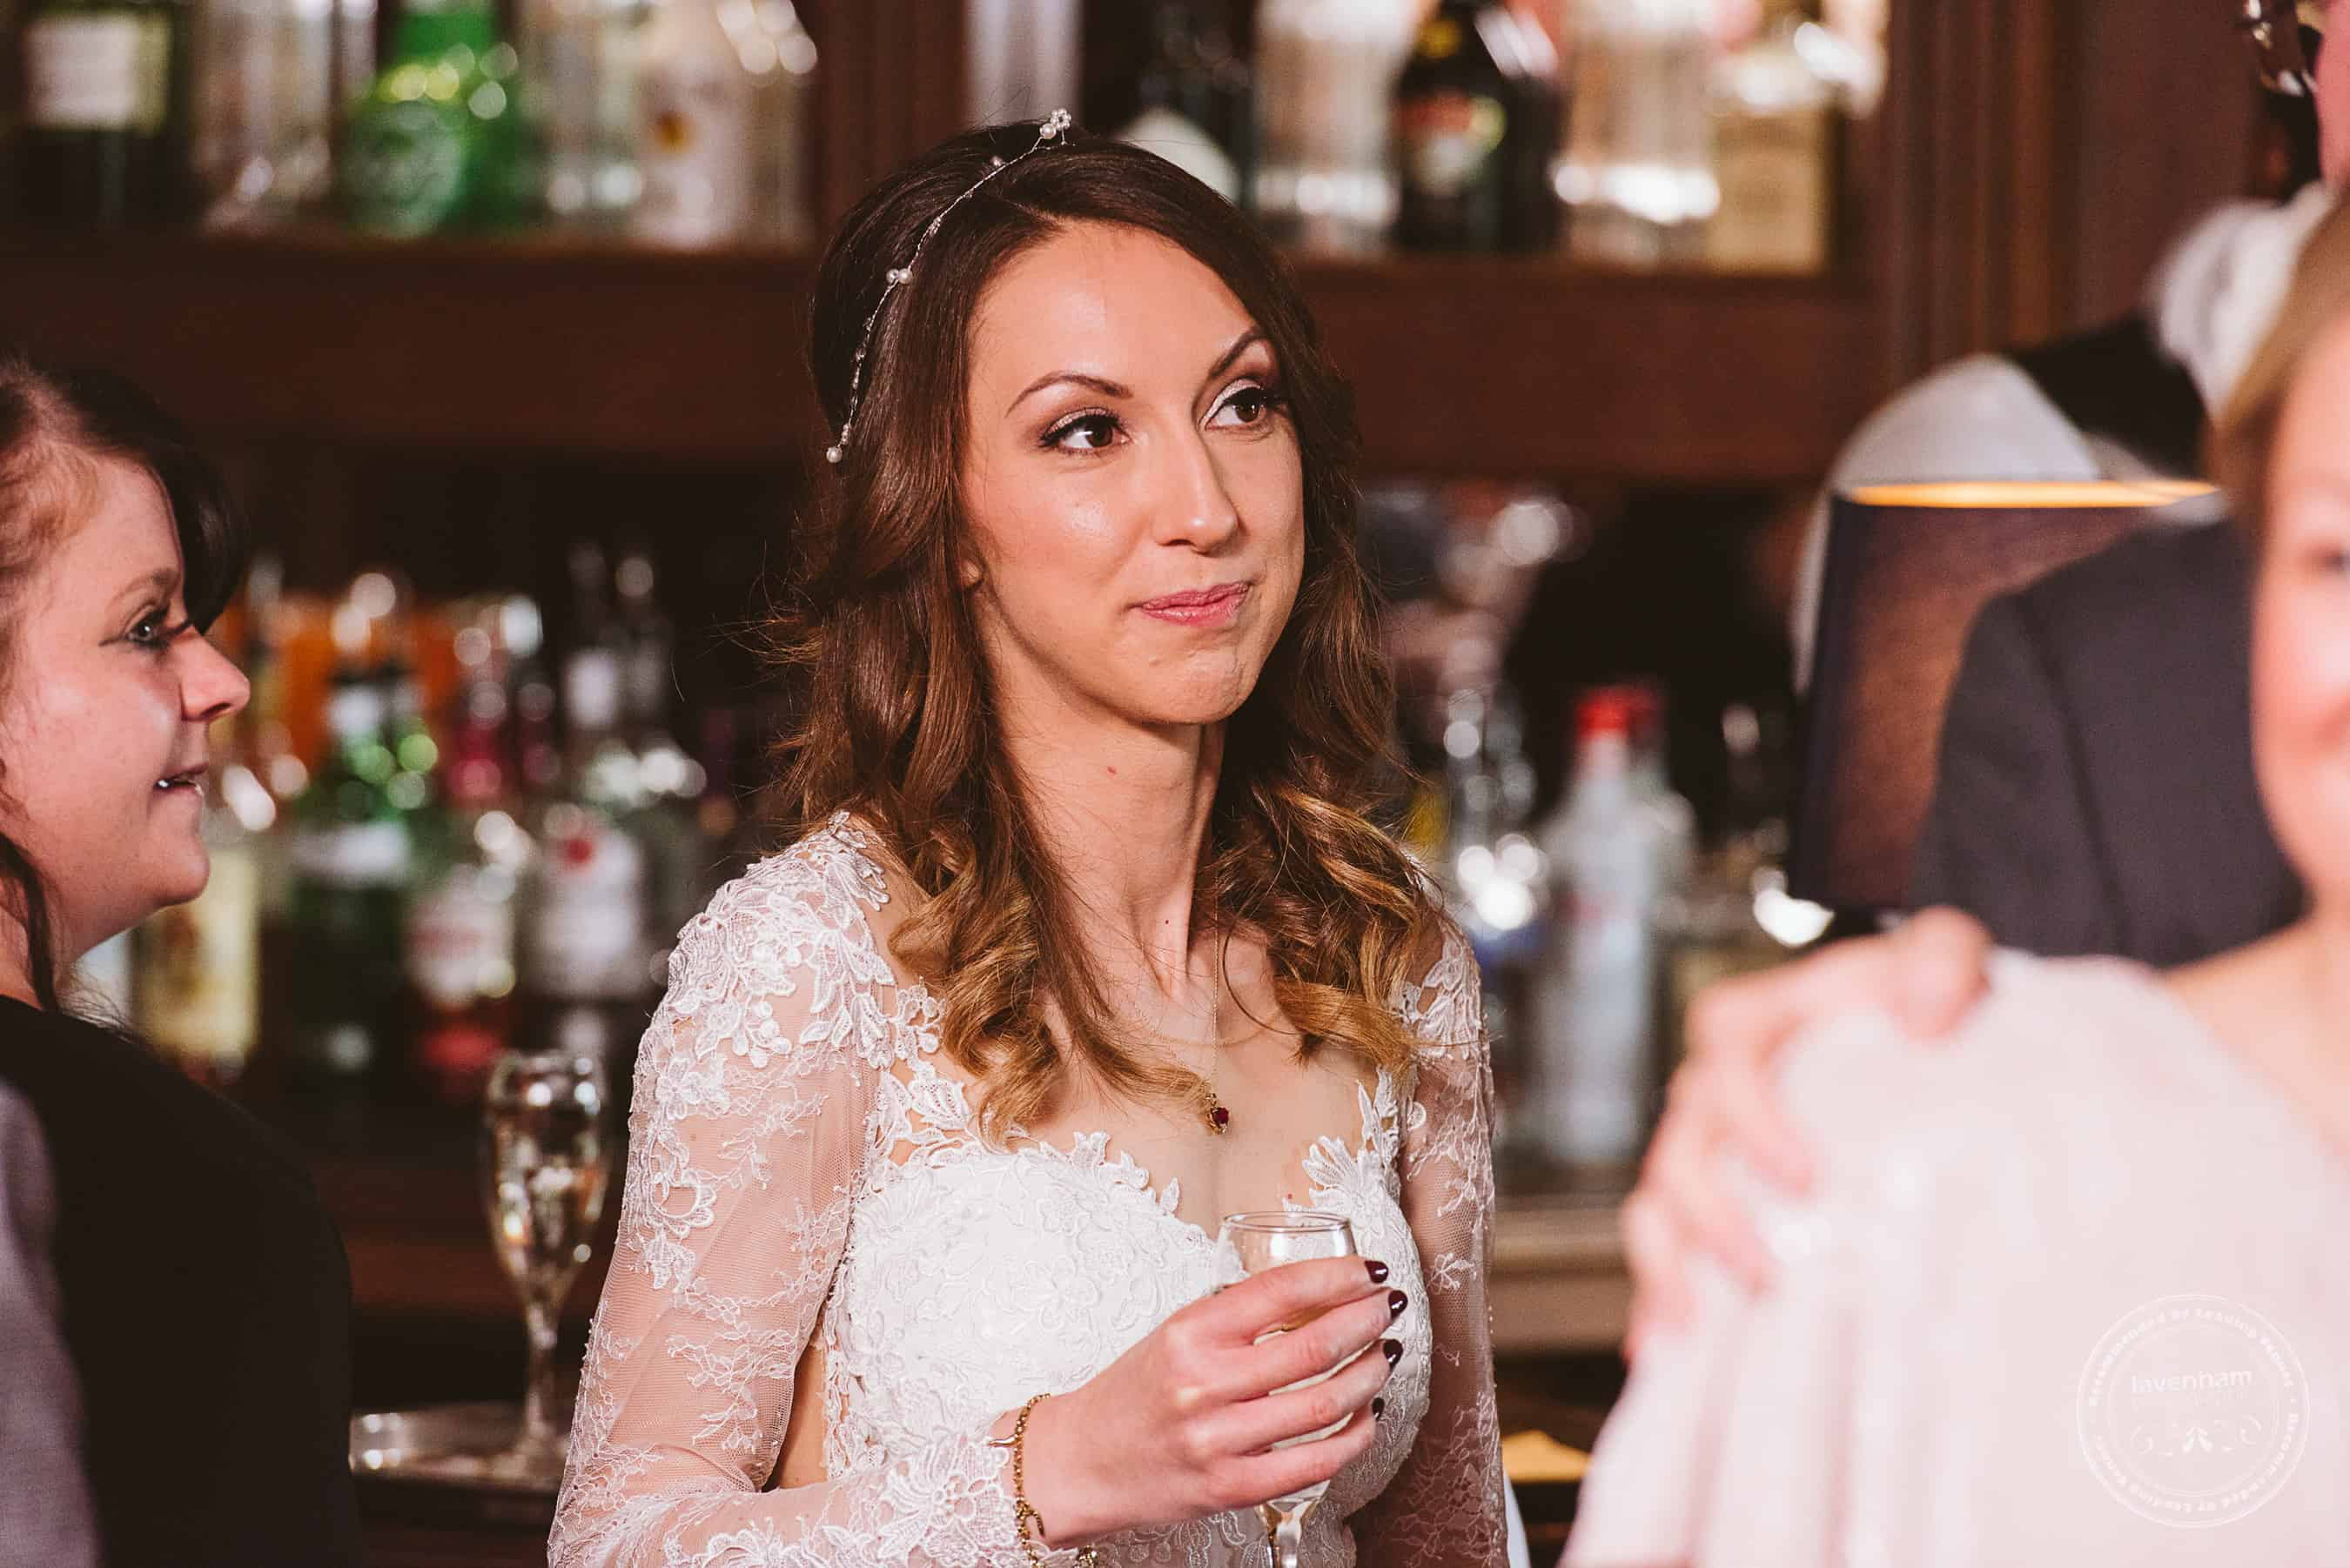 041118 Woodhall Manor Wedding Photography by Lavenham Photographic 053